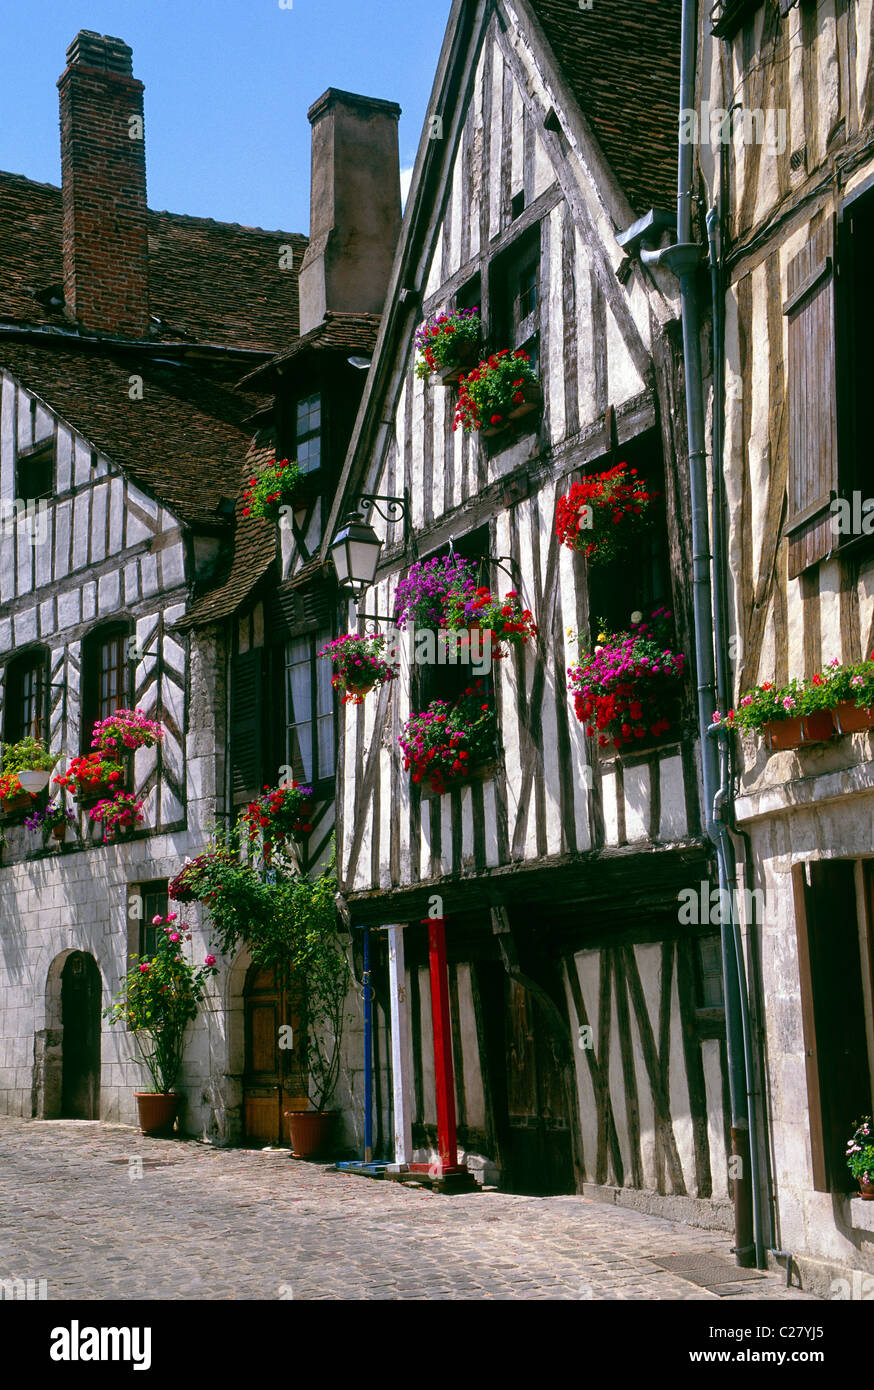 flower boxes brighten the historic tudor style homes in the flower boxes brighten the historic tudor style homes in the medieval town of auxerre france